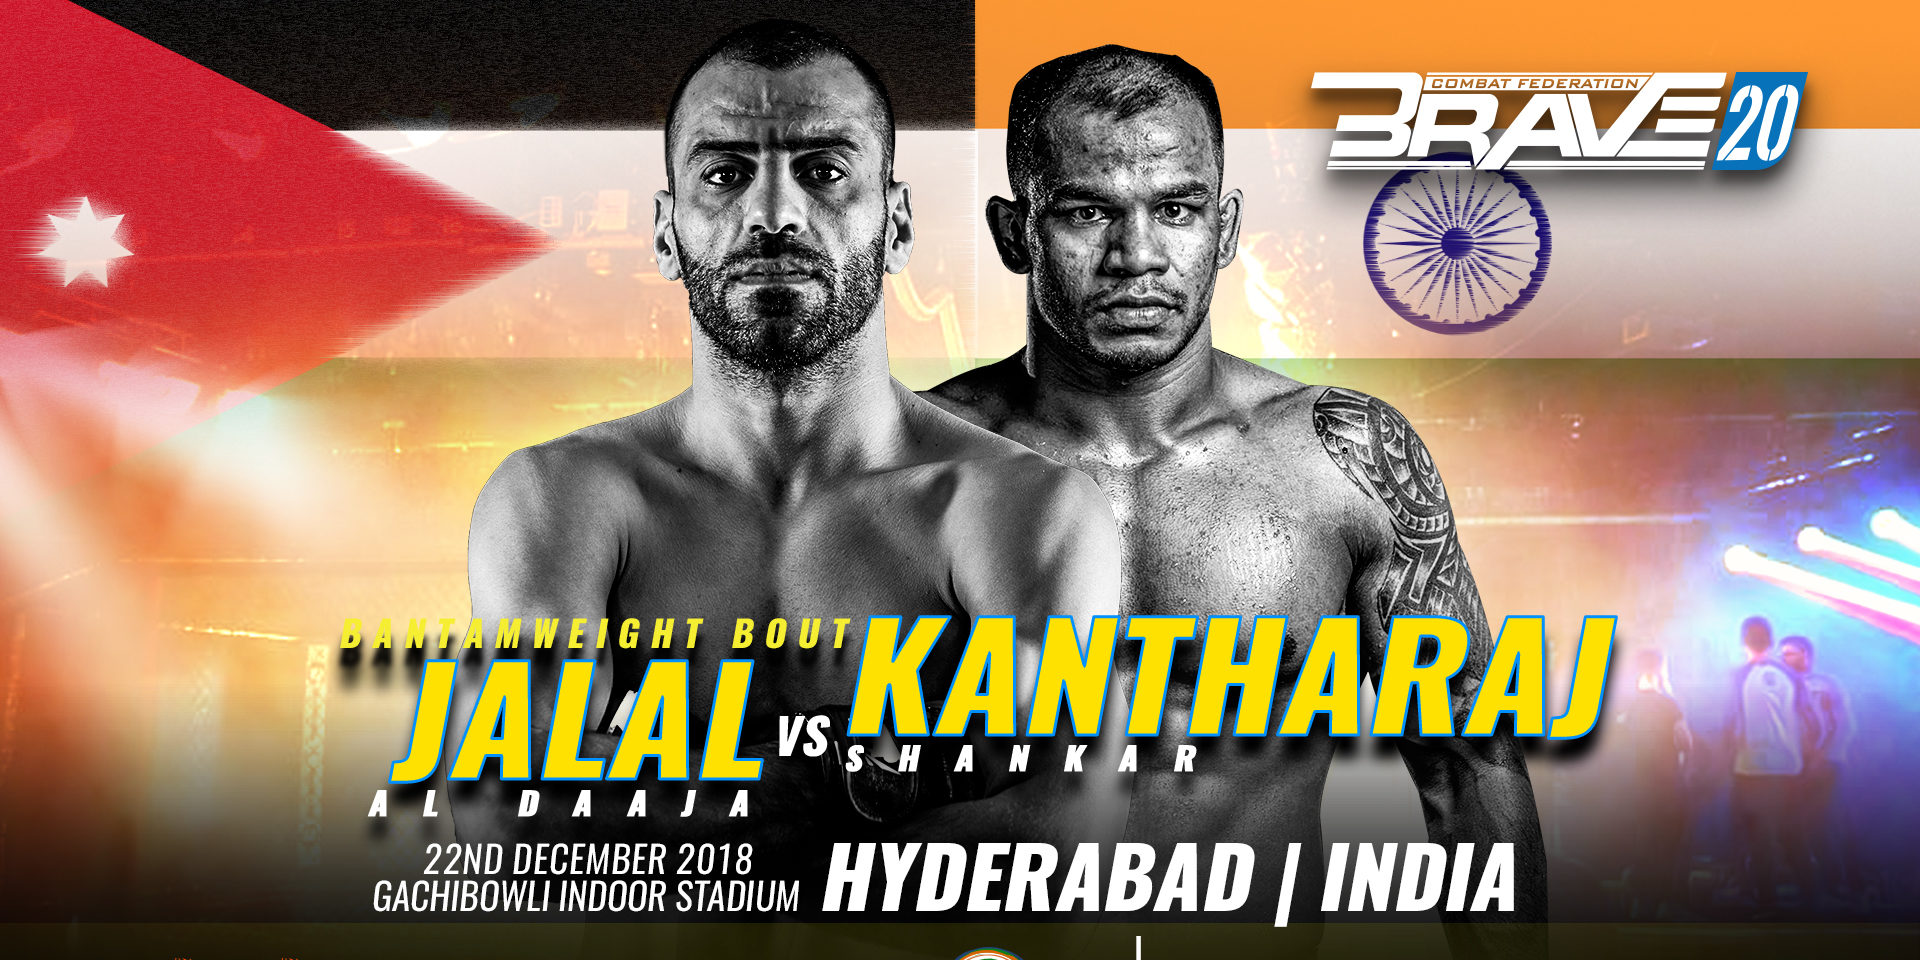 Kantaraj believes global attention will transform Indian MMA -